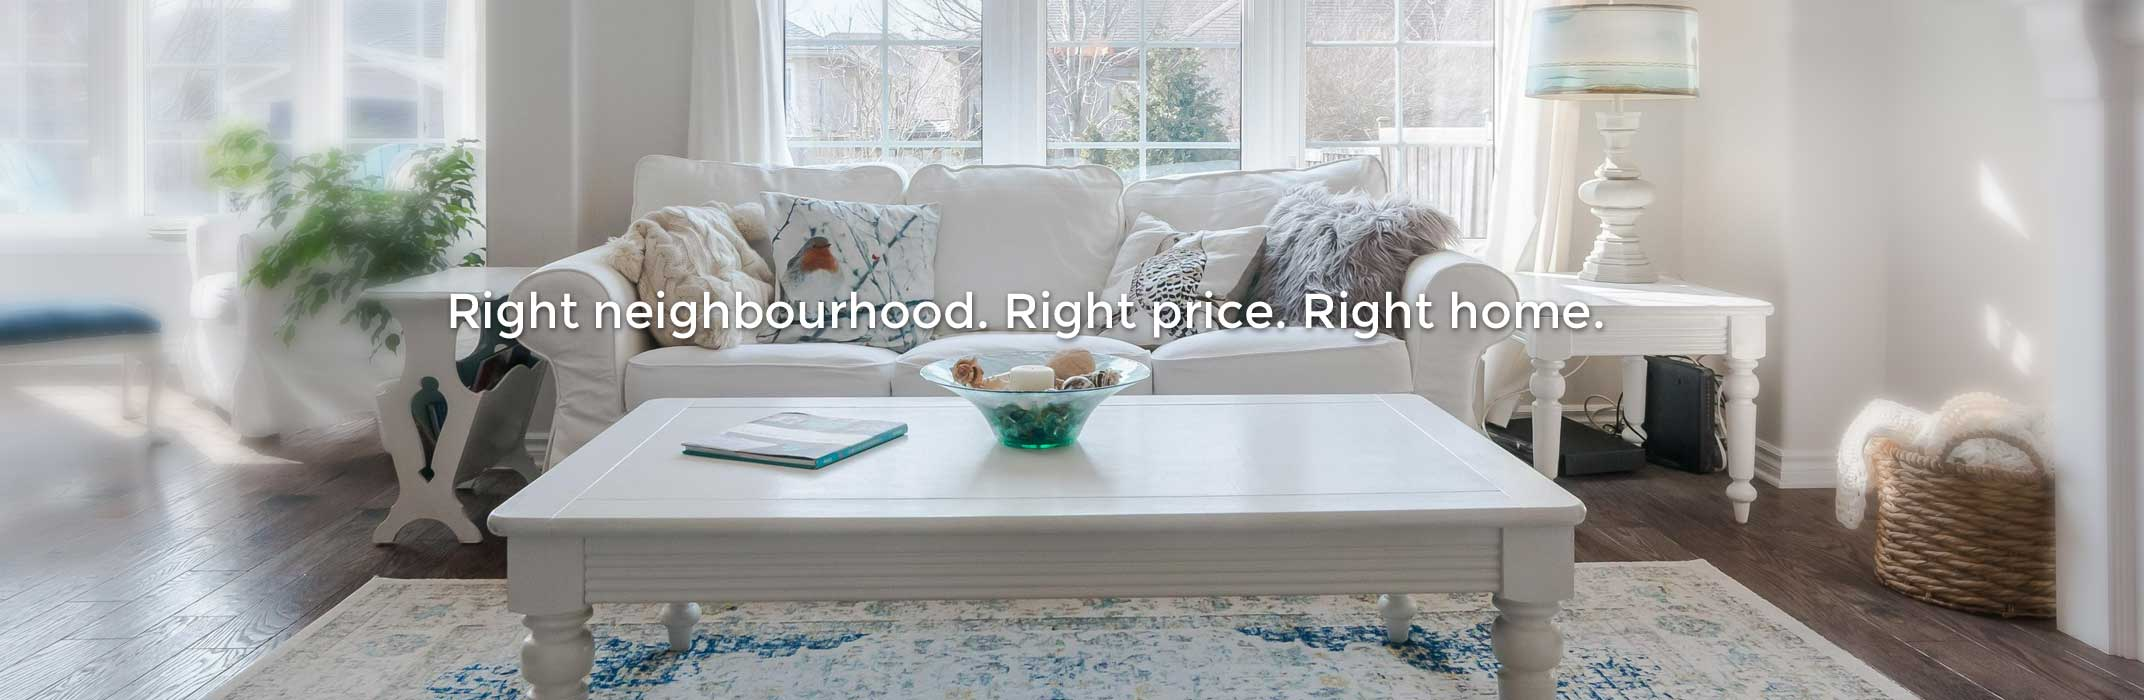 Right neighbourhood. Right price. Right home.